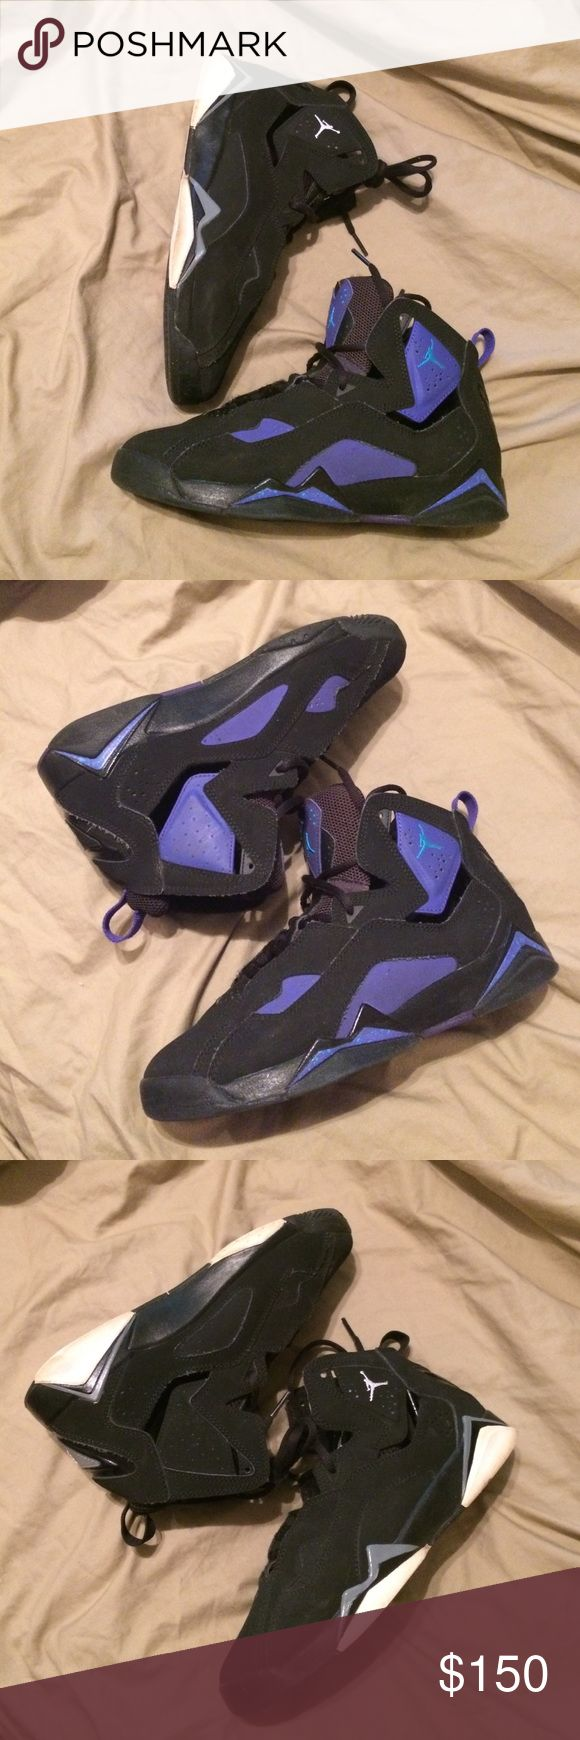 2 JORDAN TRUE FLIGHT (PRICE IS FOR BOTH SHOE SIZE 6y) (please do know posh take percentage) Selling both true flight black/white and black/purple...minor wear, need a little cleaning from storage...Price reflect brand and condition, ask any questions below before purchase, will only negotiate through offer button, feel free to to give me a reasonable offer, low ball me and I will decline Jordan Shoes